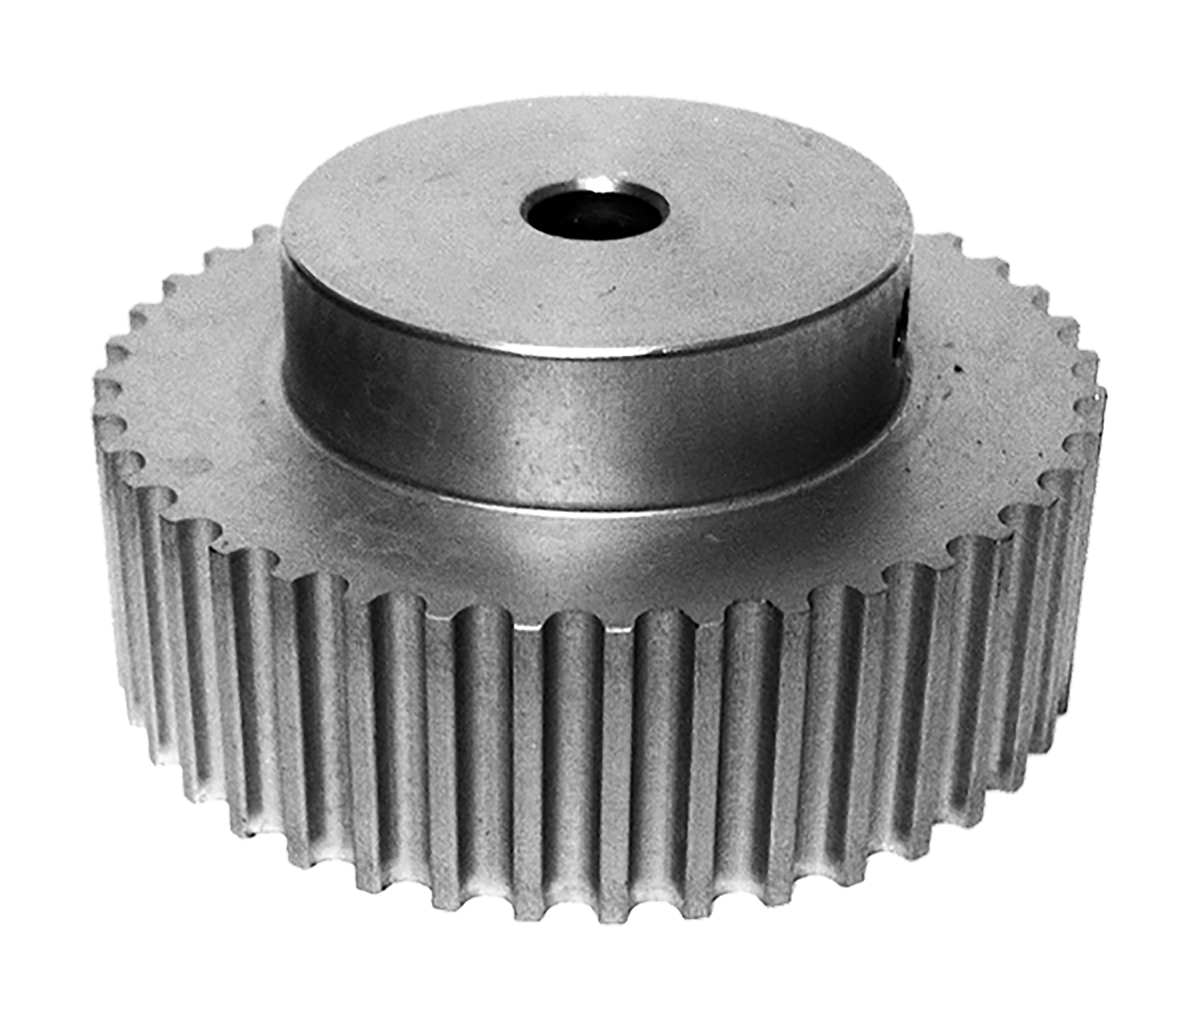 34-5M15-6A3 - Aluminum Powerhouse®HTD® Pulleys